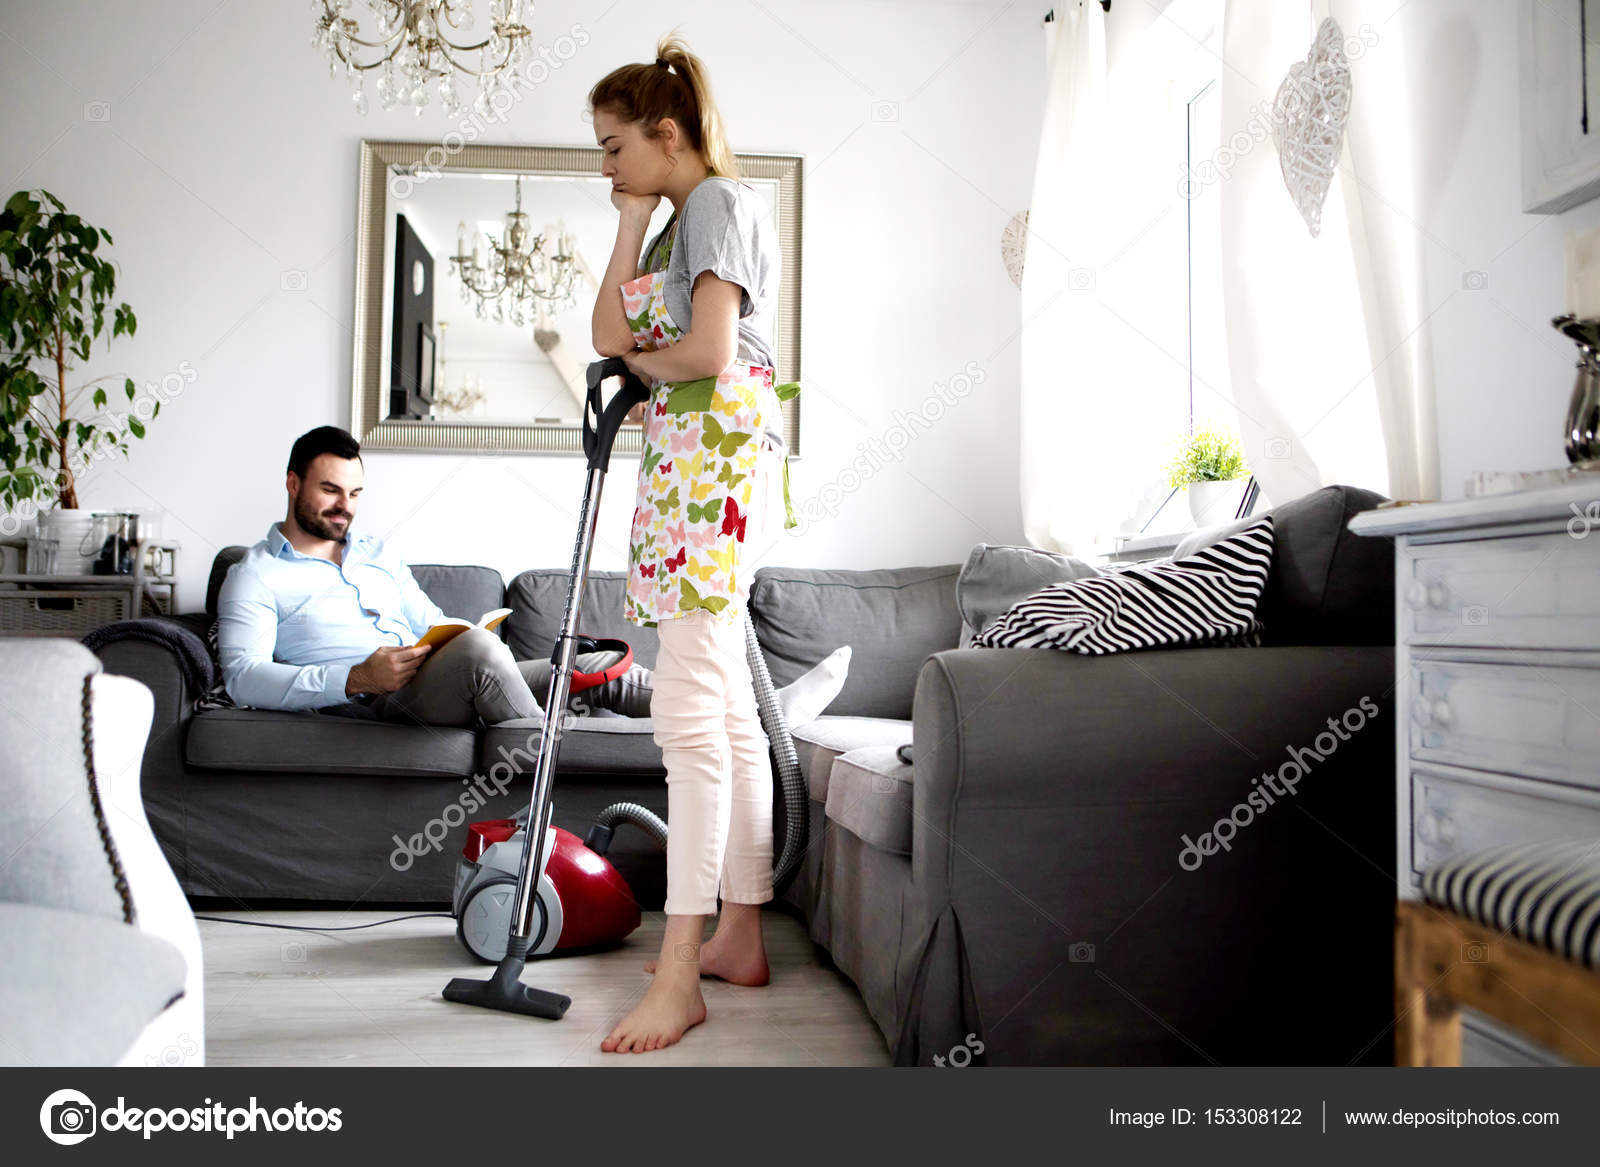 Woman Doing Chores Using Vacuum Cleaner On Carpet And Lazy Man On